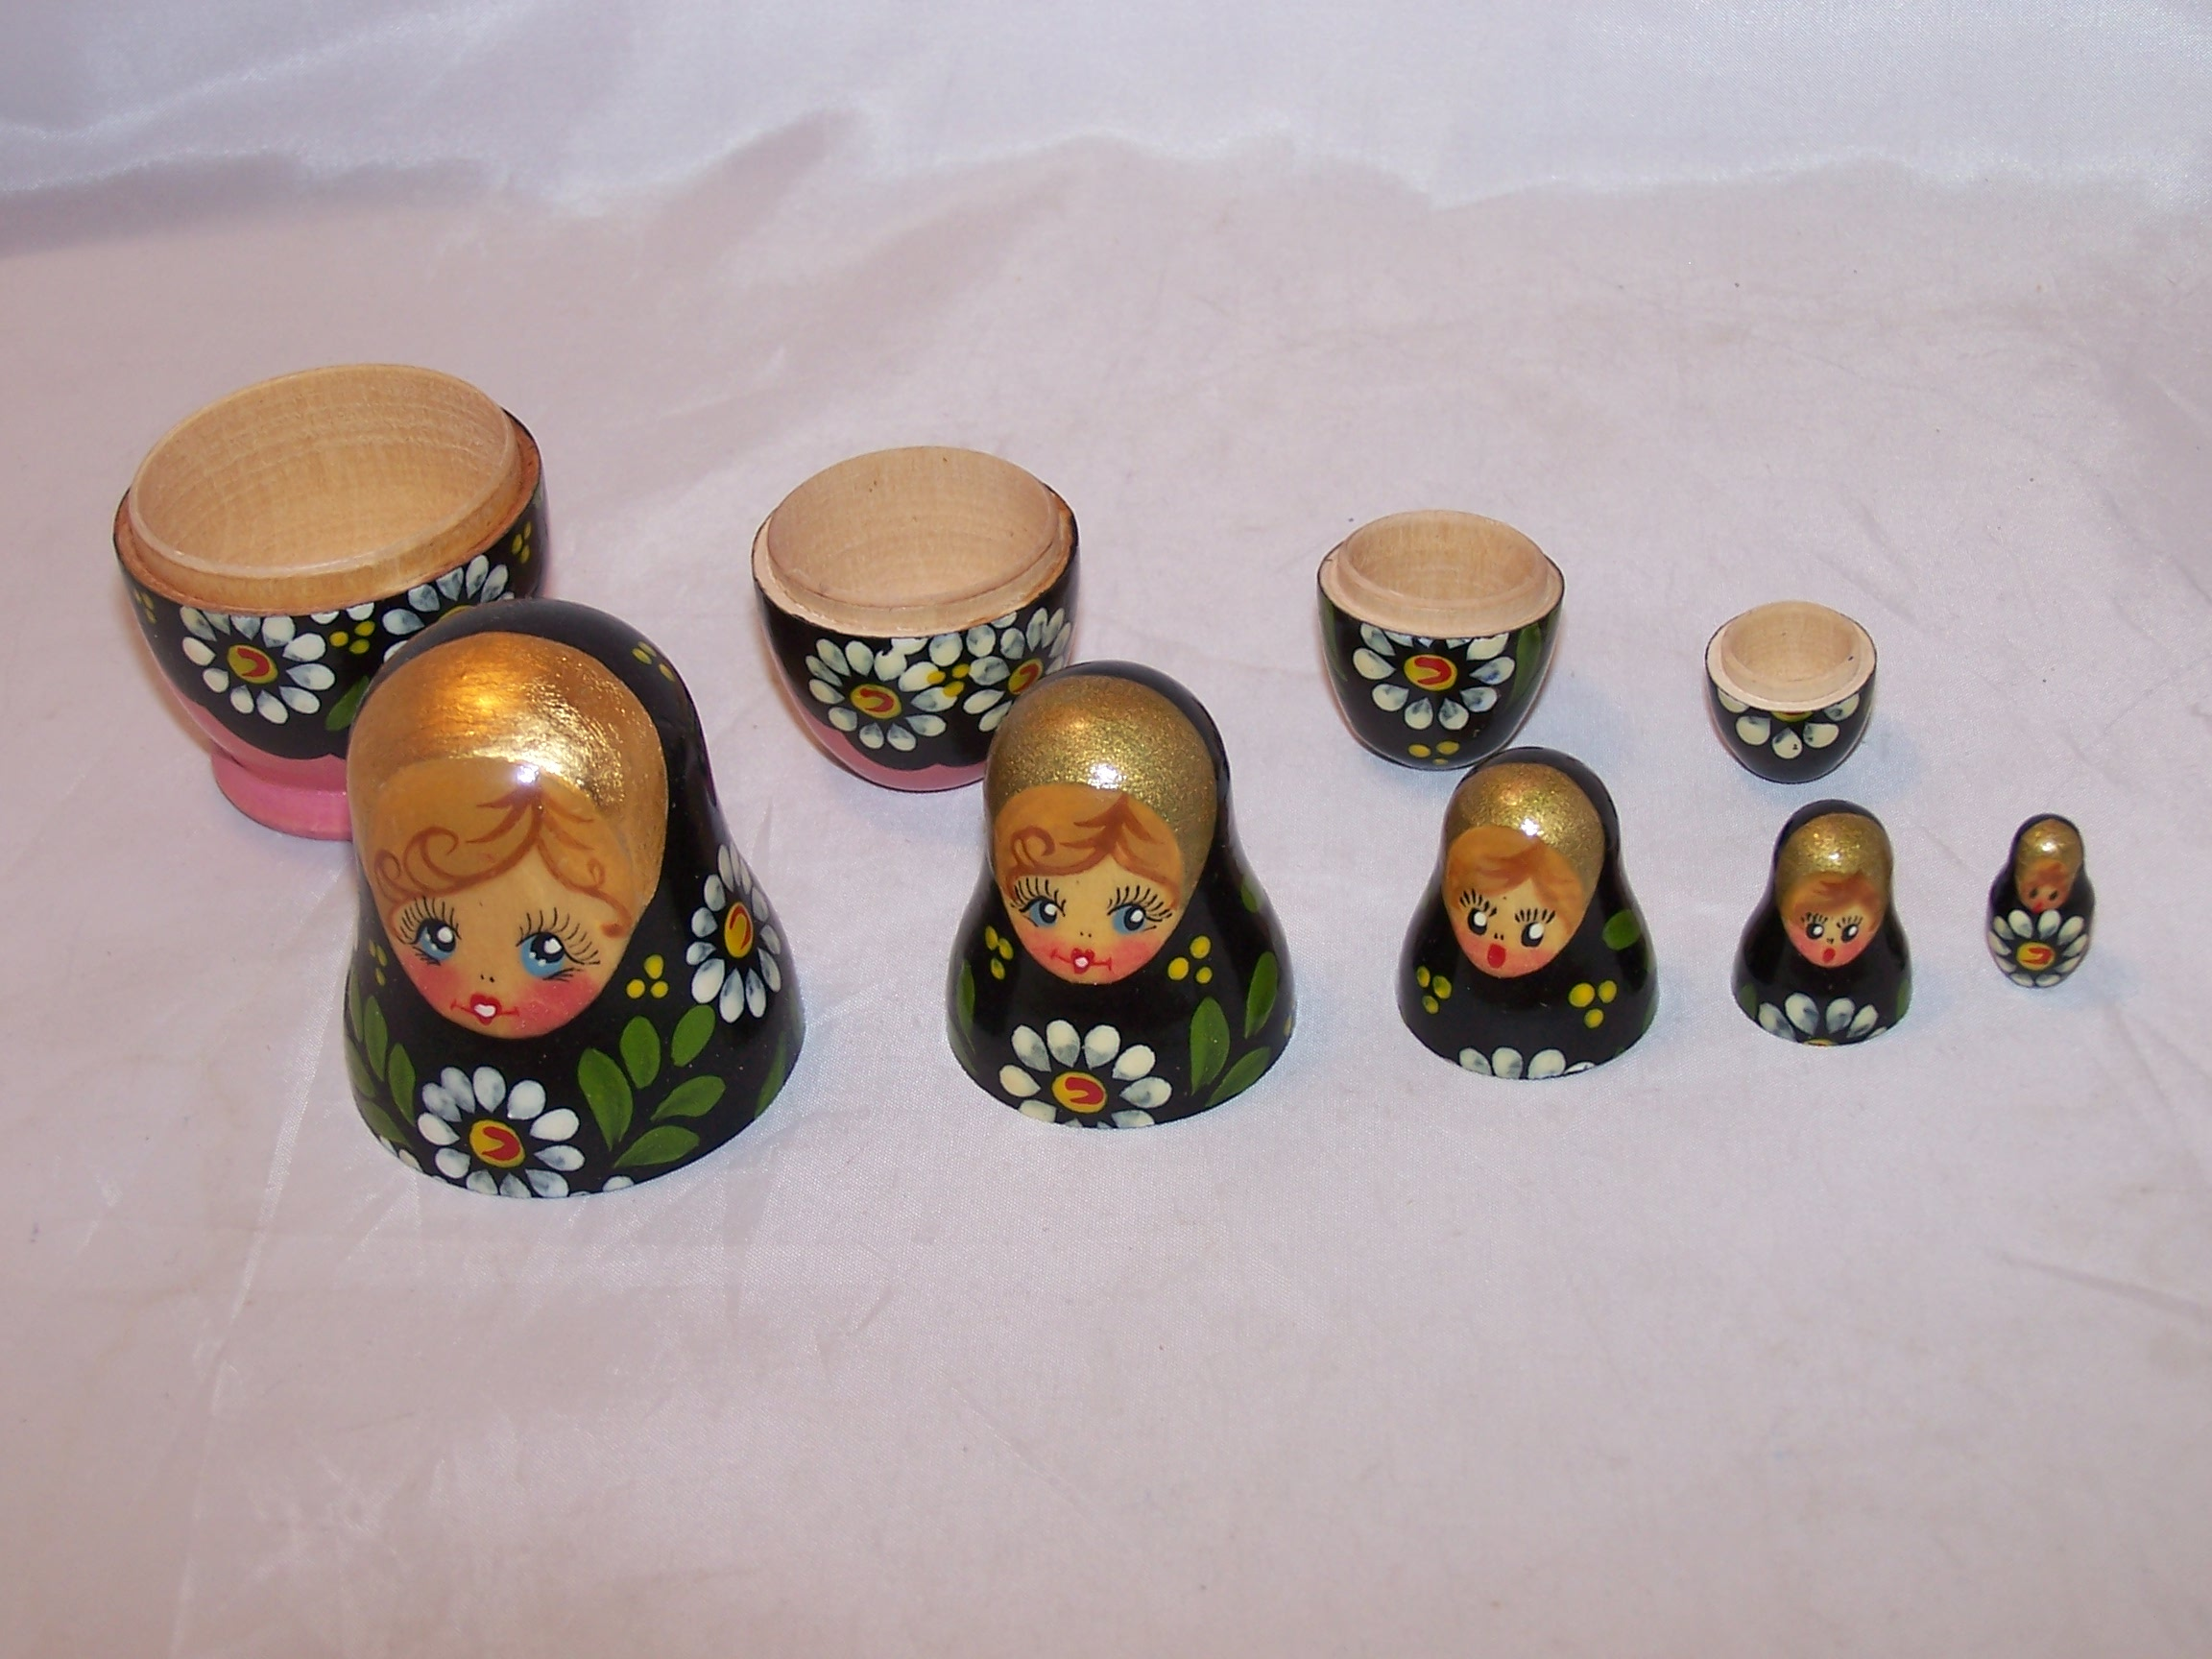 Nesting Doll in Black, Pink w Daisies, 5 Levels, Wood